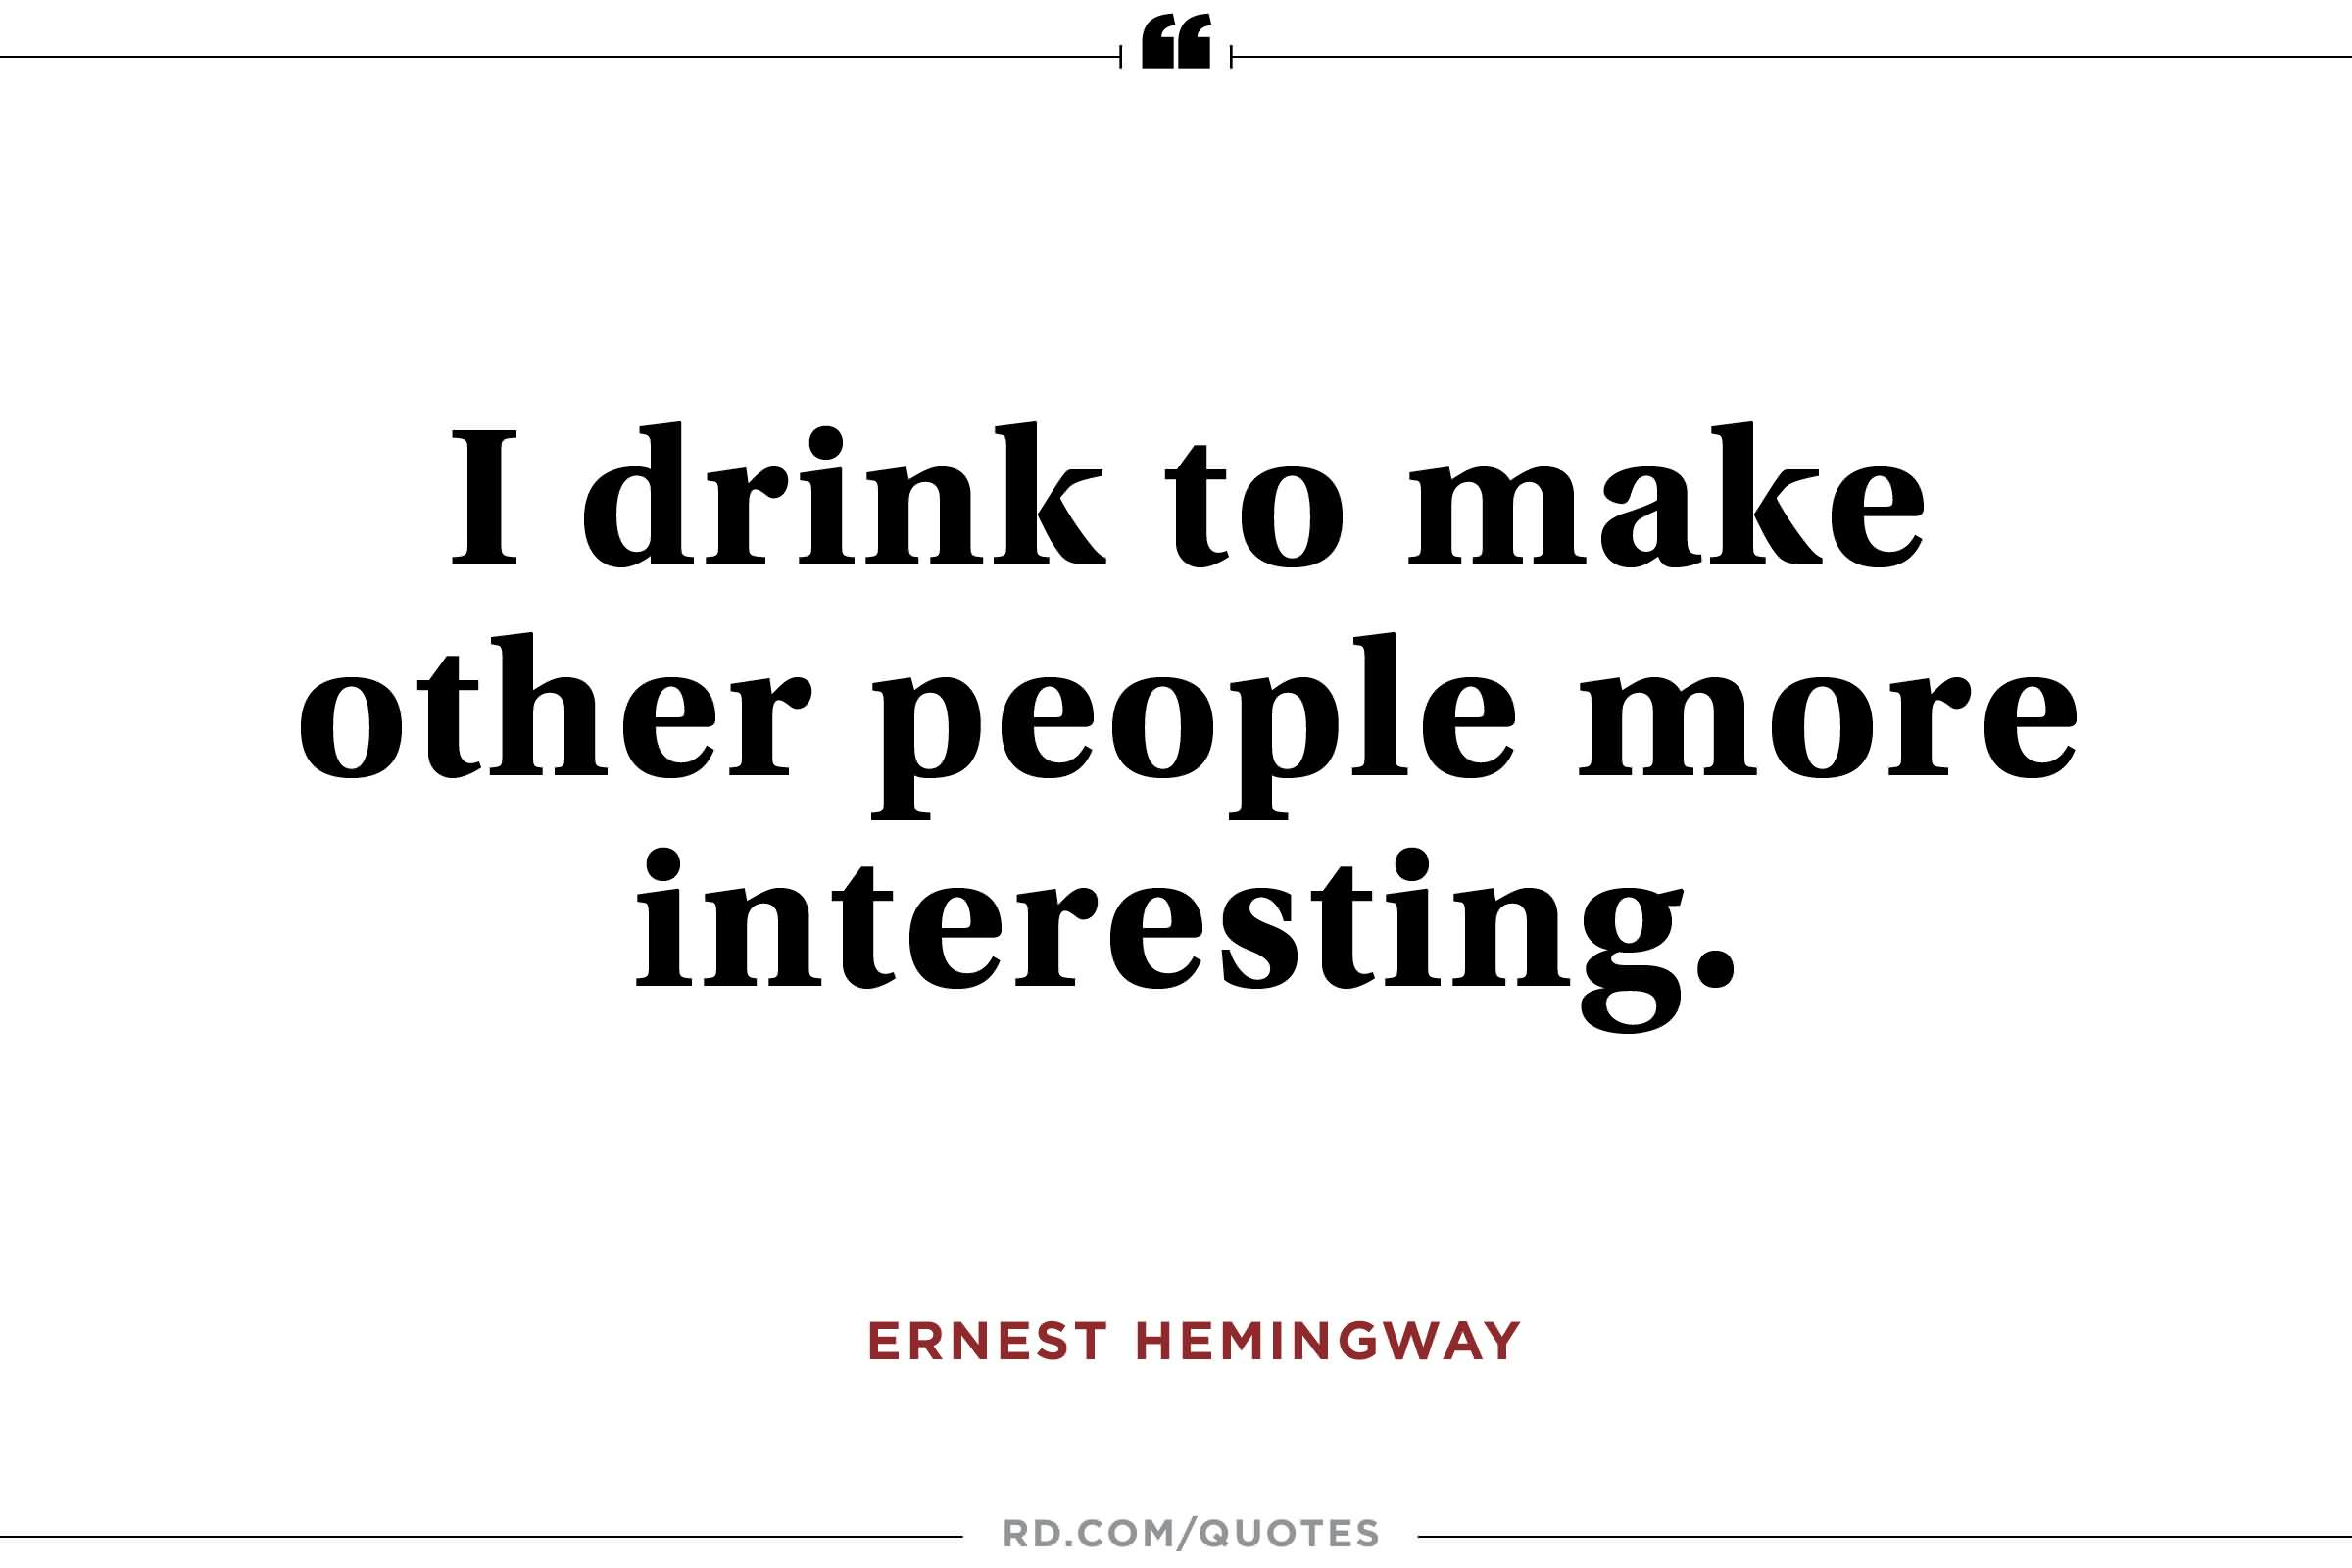 Outstanding Ernest Hemingway Quotes